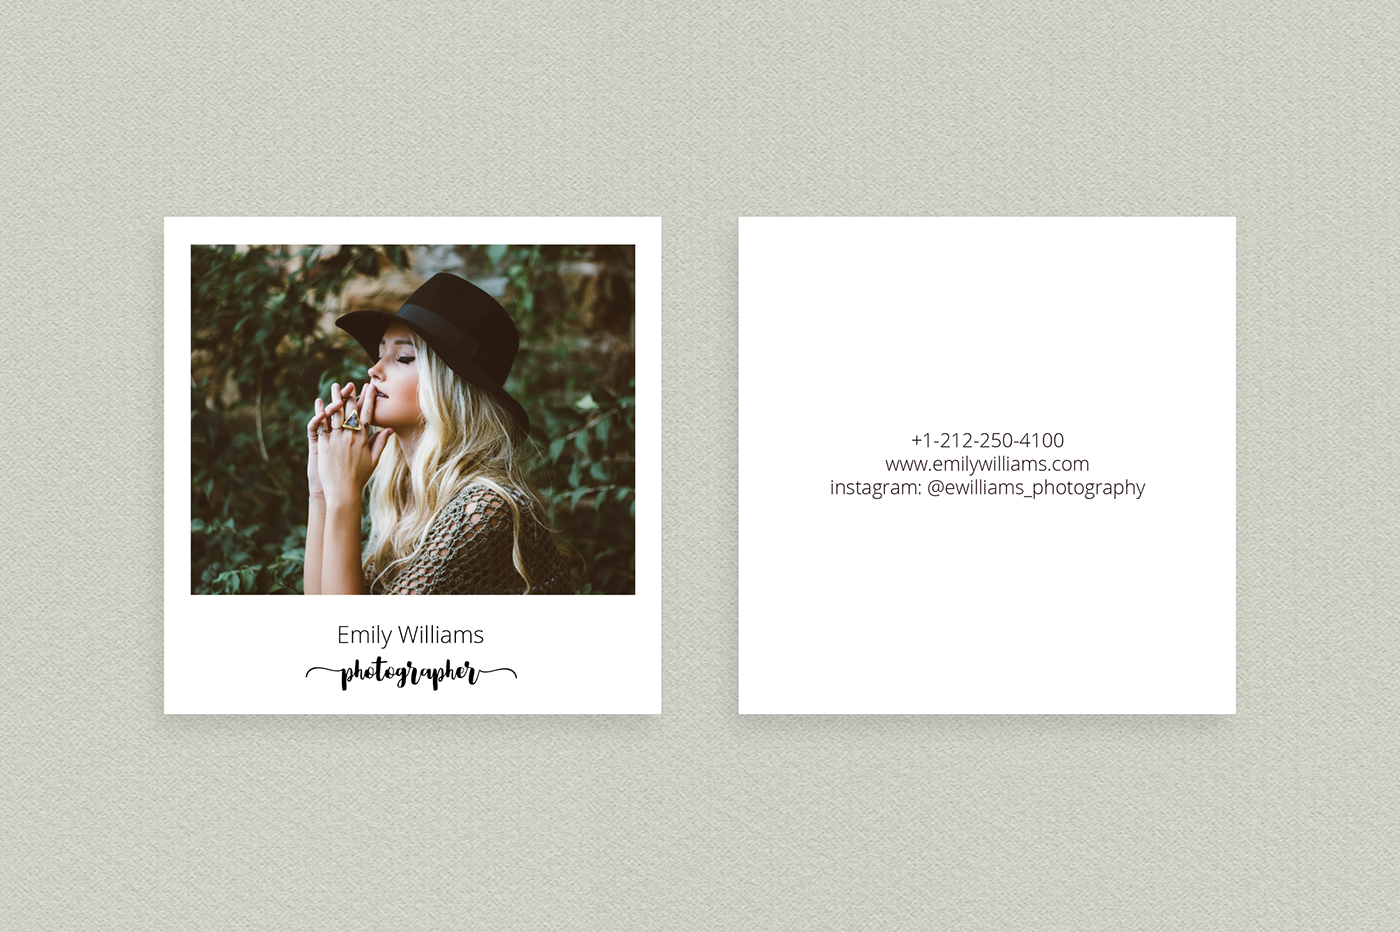 Square polaroid photographer business card template on behance square polaroid business card is creative unique and cool visiting card template made in minimal style for photographers looks professional reheart Images